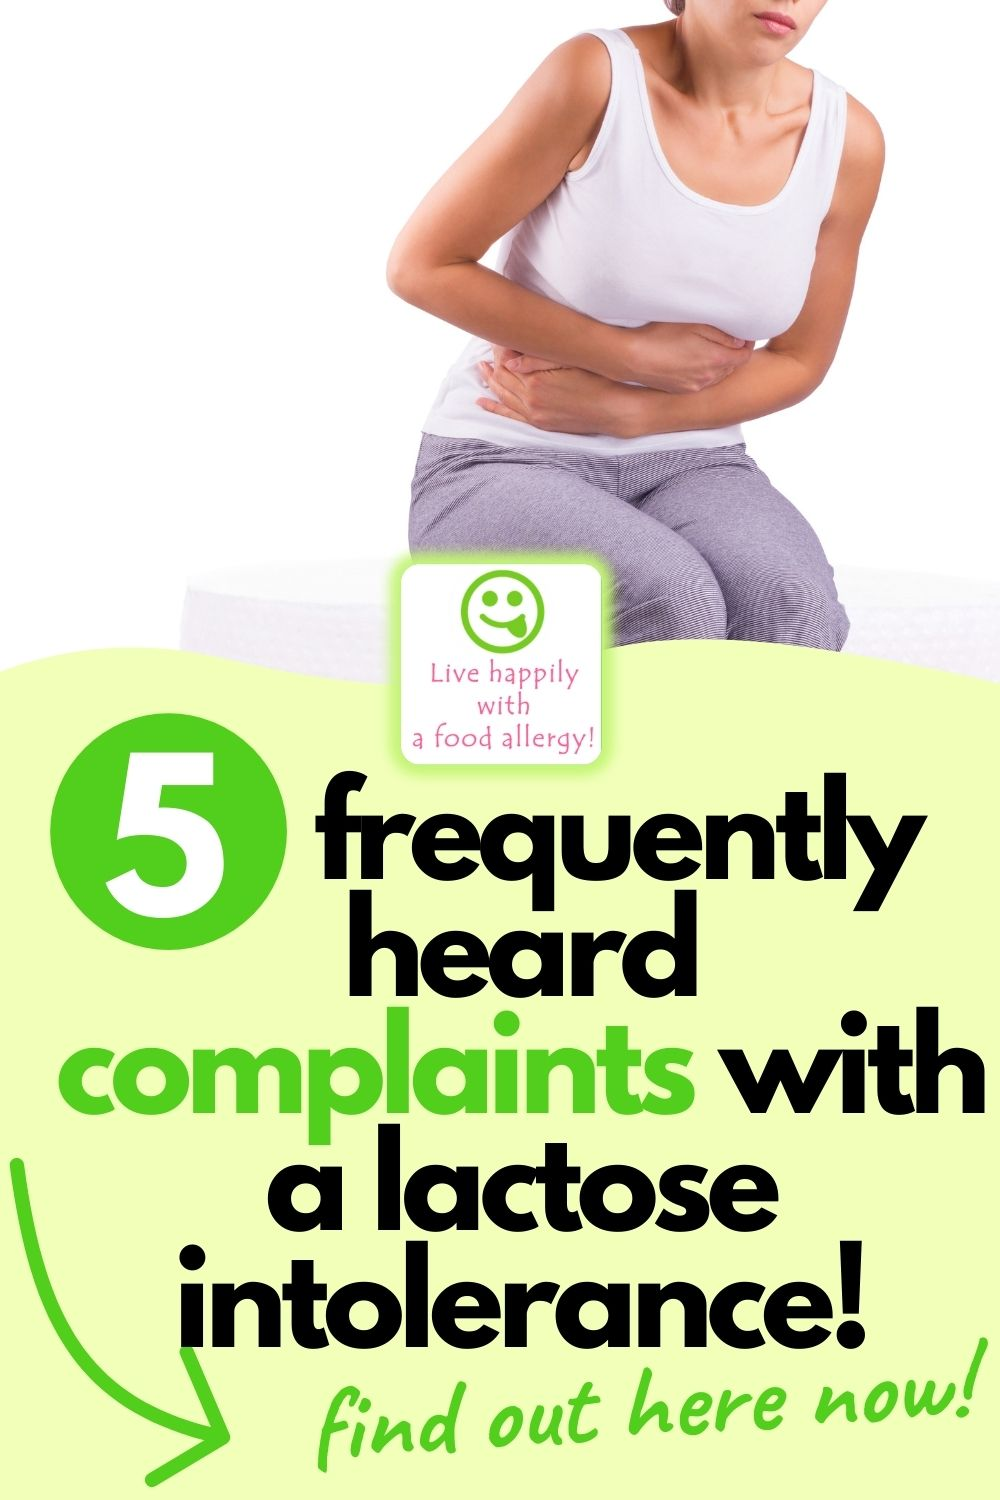 5 frequently heard complaints with a lactose intolerance that are common